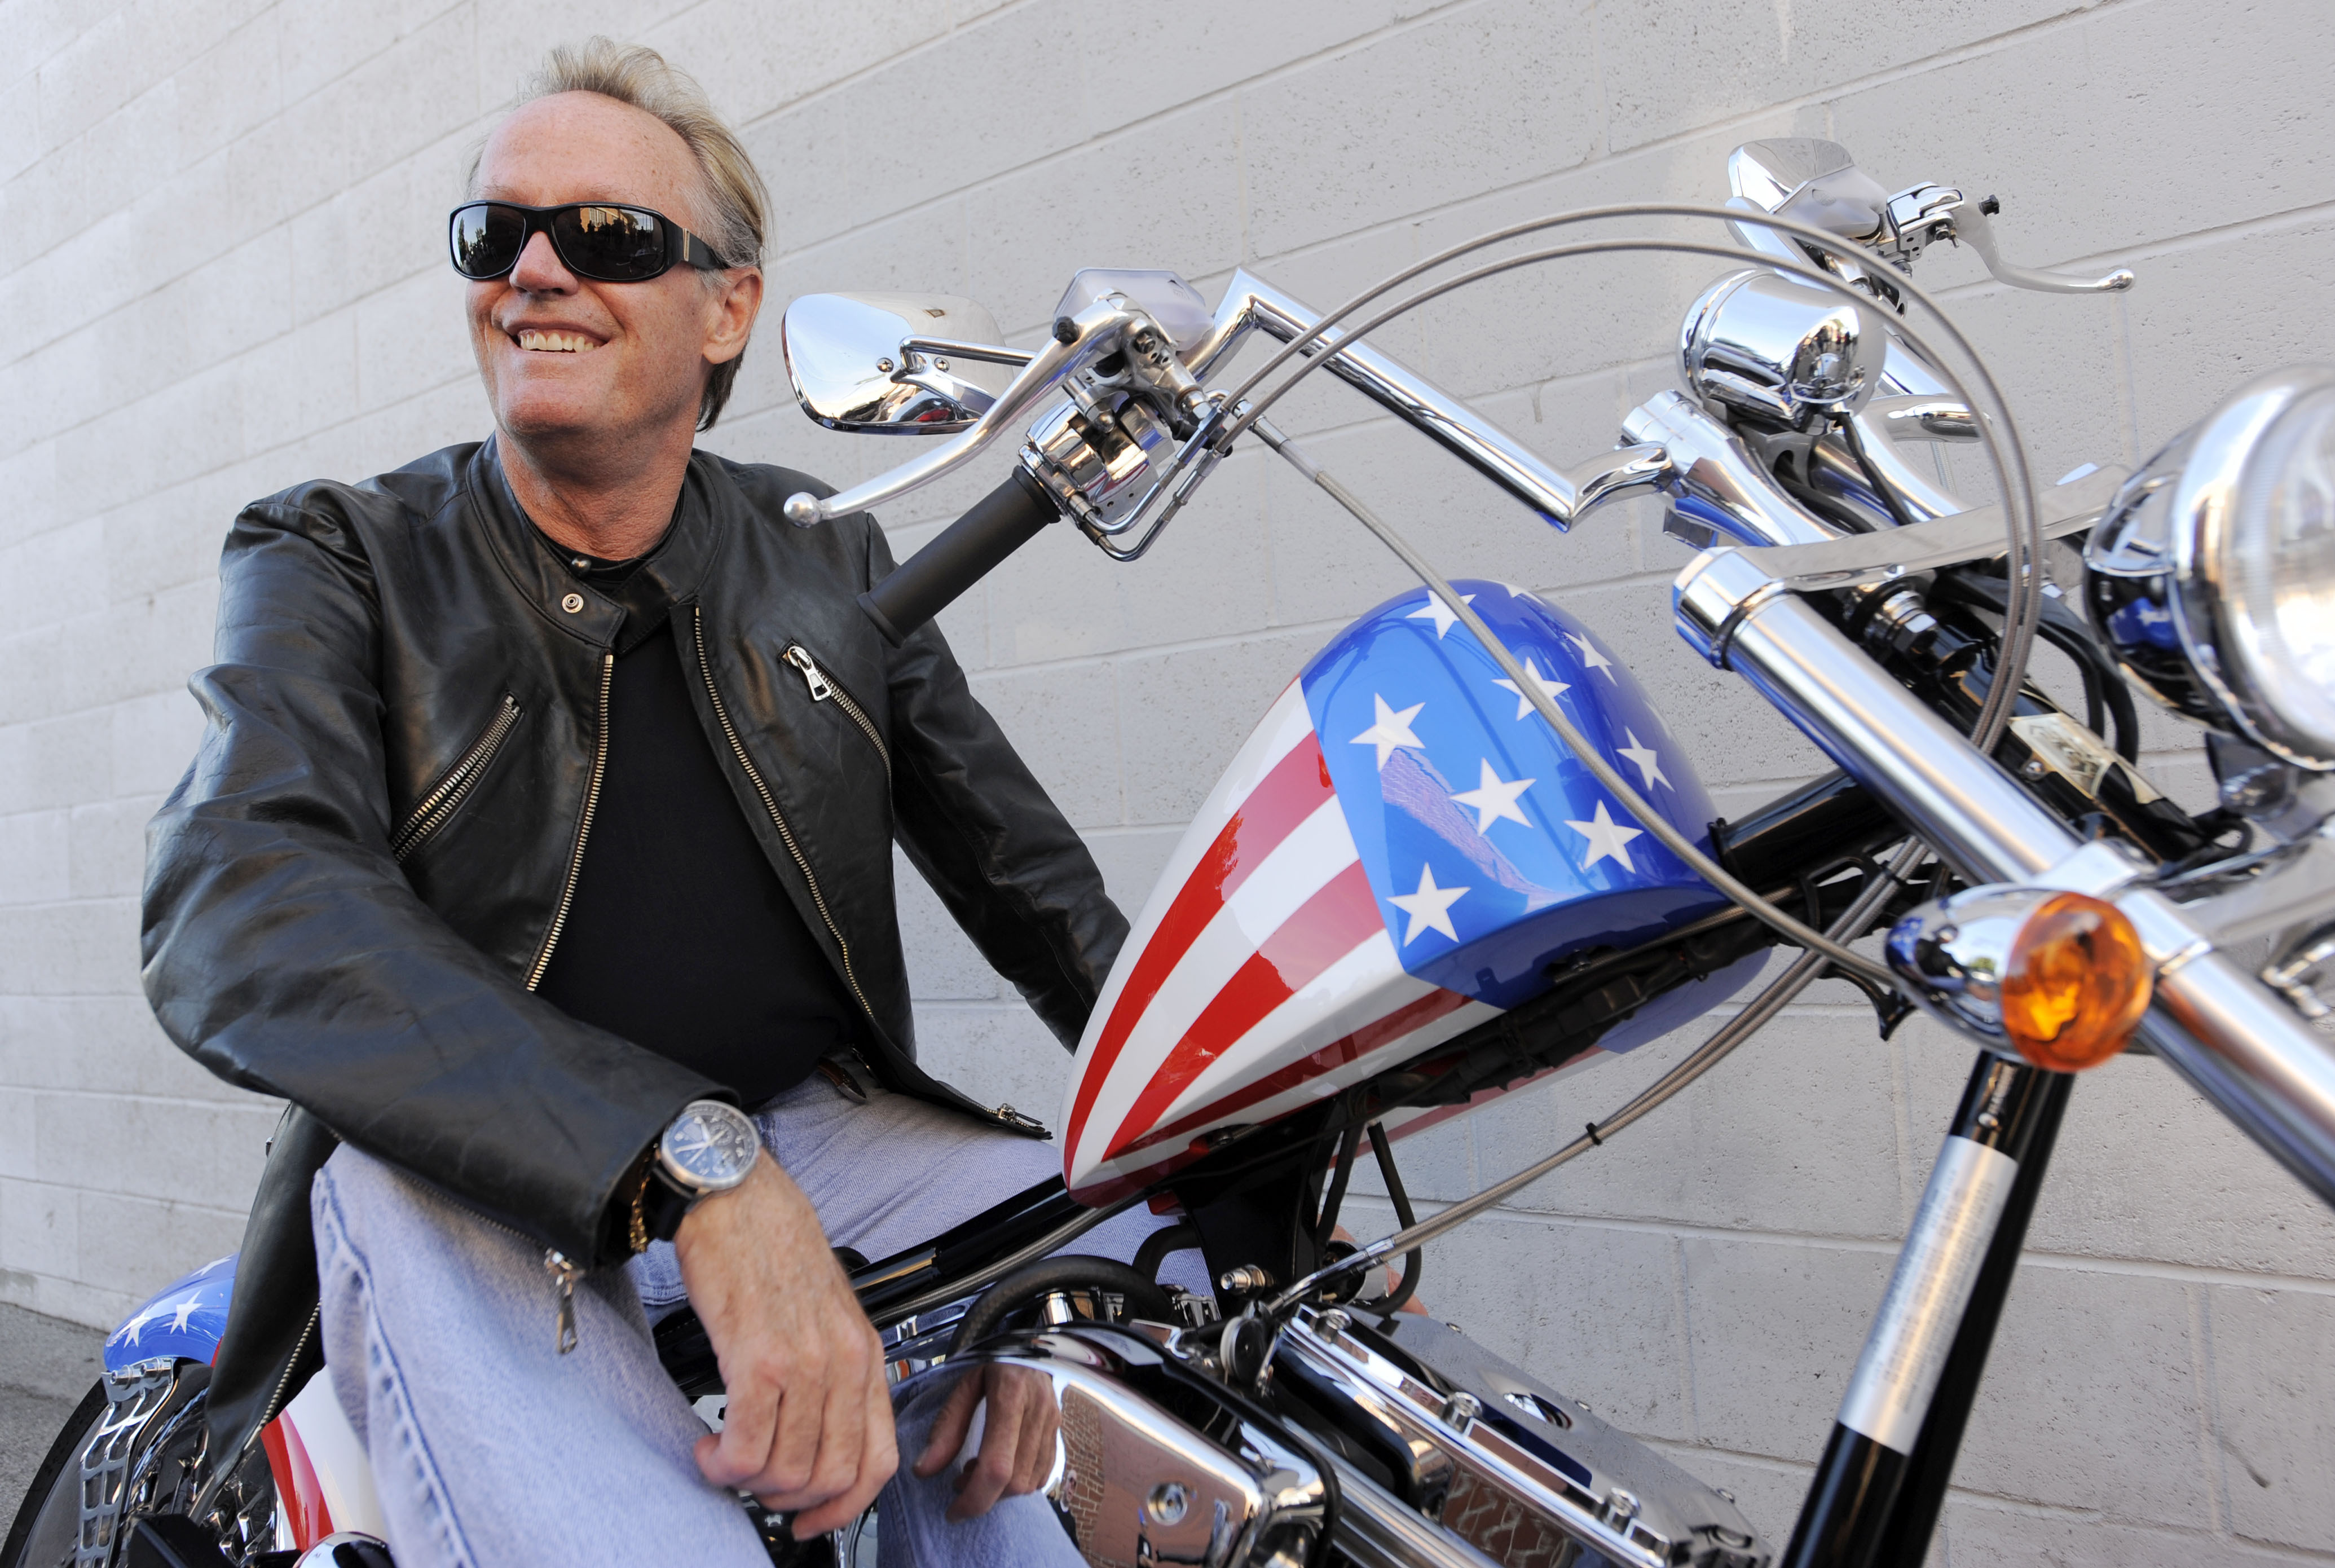 In this 2009 file photo, Peter Fonda poses atop a Harley-Davidson motorcycle in Glendale, California. The actor died Friday.